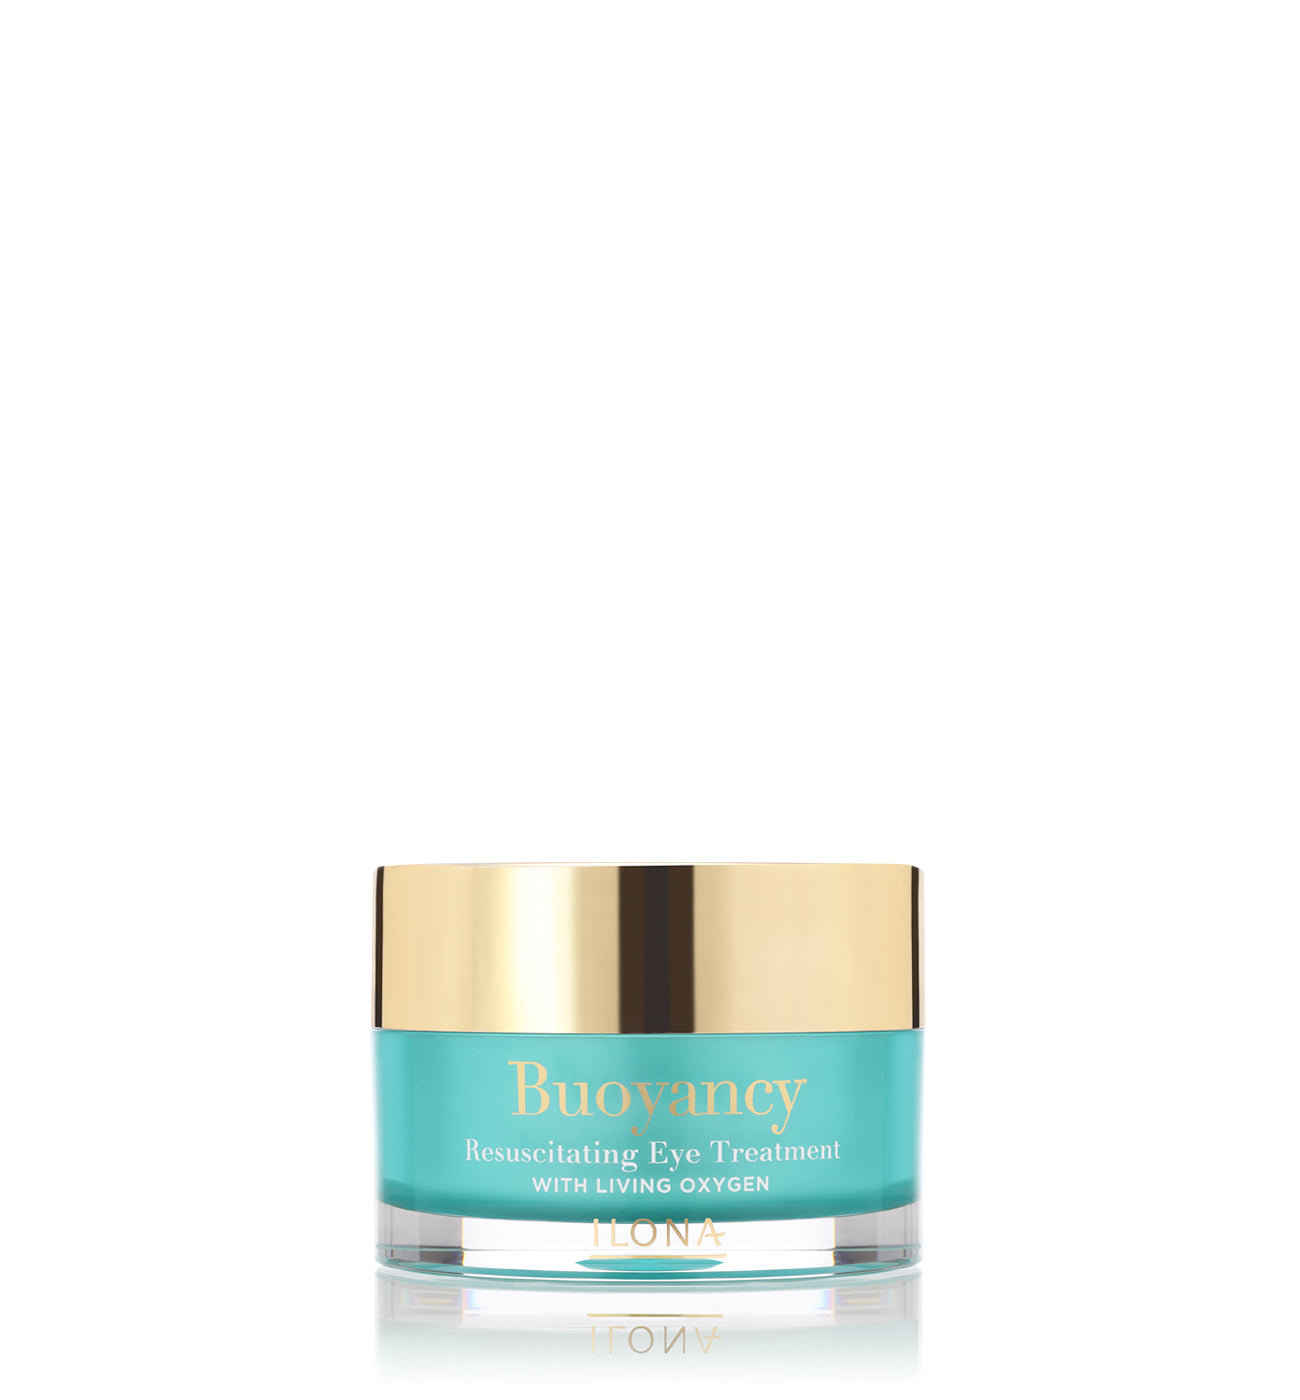 Buoyancy® for Face and Eyes _ ReOxygenating Moisture Cream & Resuscitating Eye Treatment